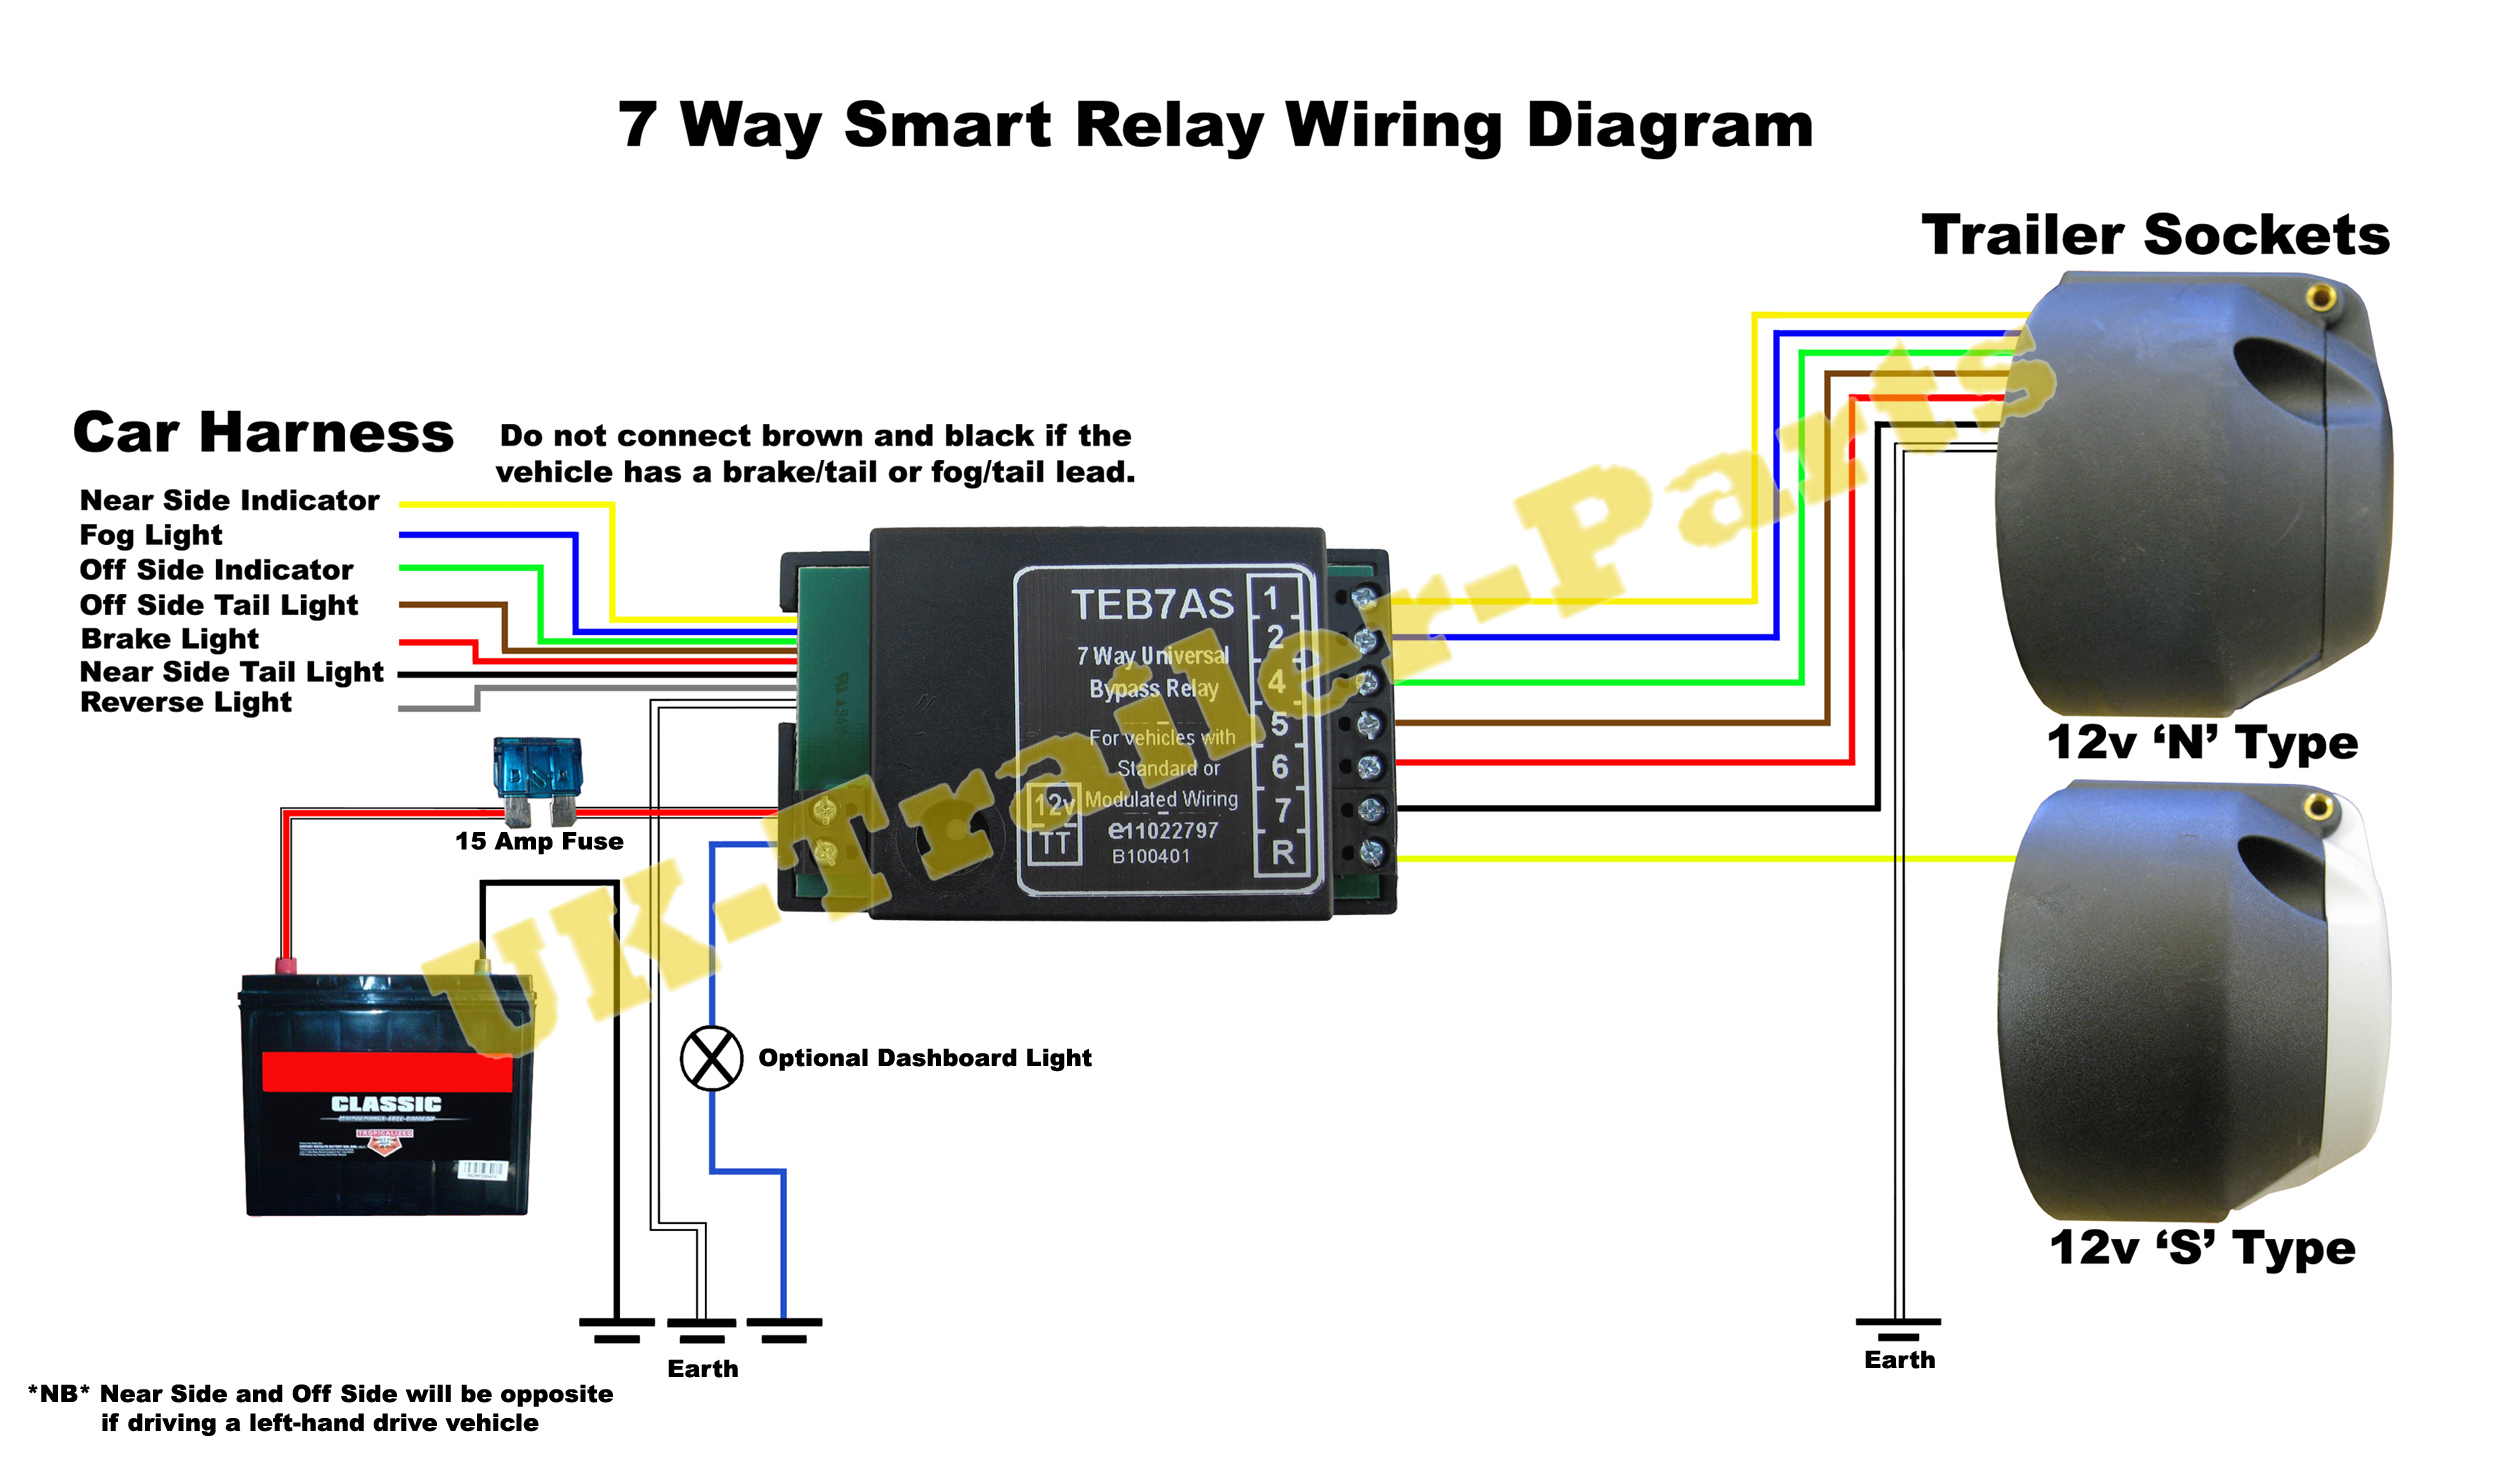 7 way universal bypass relay wiring diagram uk trailer parts 7 way universal bypass relay wiring diagram